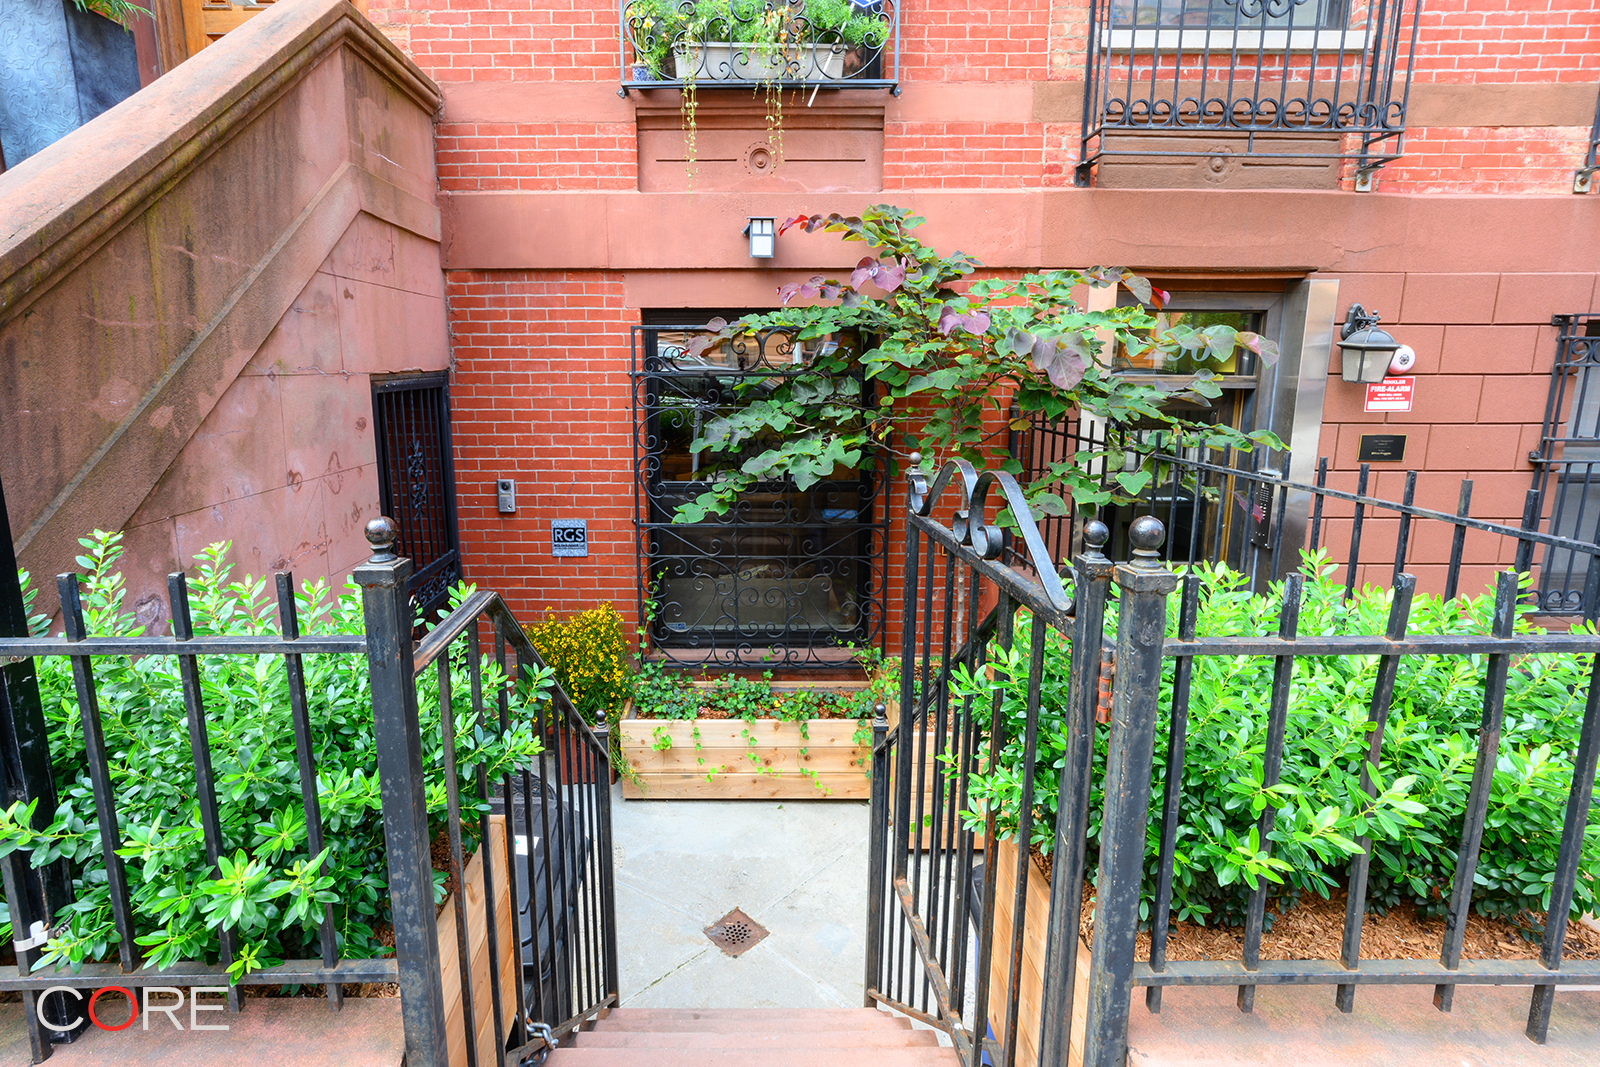 Please copy this URL to view the 3D tour: https://my.matterport.com/show/?m=TEesiMPzTCc&mls=1   With three bedrooms and three bathrooms, this duplex garden condominium in prime Harlem maximizes live/work/play flexibility. Its three outdoor spaces include a private patio and garden and over 2,000 square feet of living space and amenities, all accessible through a private entrance. This home is ready for immediate move-in, with no board approval and no application fees.   Enter this classic townhouse into an expansive 25-foot long open concept living space which is framed by exposed brick and hardwood floors and includes a wood-burning fireplace, a formal dining area, and a chef's kitchen with Wolf and Bosch appliances. The oversized island and breakfast bar are surrounded by a wealth of storage and make entertaining at home easy and comfortable.   The master bedroom is a private retreat with a balcony overlooking the garden, a walk-in closet, and an en-suite bath, complete with a deep soaking tub. A second large bedroom with an adjacent full bathroom also overlooks the serene back yard. The lower level consists of a large open space ideal for recreation or business and has a third bedroom set discretely near the garden entrance, a third bathroom, in-home laundry, and additional storage. The private backyard garden offers a quiet urban oasis where there is ample space for relaxing, entertaining on the patio, and gardening in the uniquely designed and customized raised garden bed area. Central heat and A/C finish this modern and charming home.   254 West 123rd Street is a quaint three-unit, well-maintained condominium, located on a tree-lined street just around the corner from Frederick Douglass Boulevard's action and close to Harlem's parks and green spaces. The building is within close distance to multiple transportation options including parking garages, the A,B,C,D subway express stop at 125th Street, the 2/3 subway on Lenox Avenue, 125th Street's crosstown buses, 